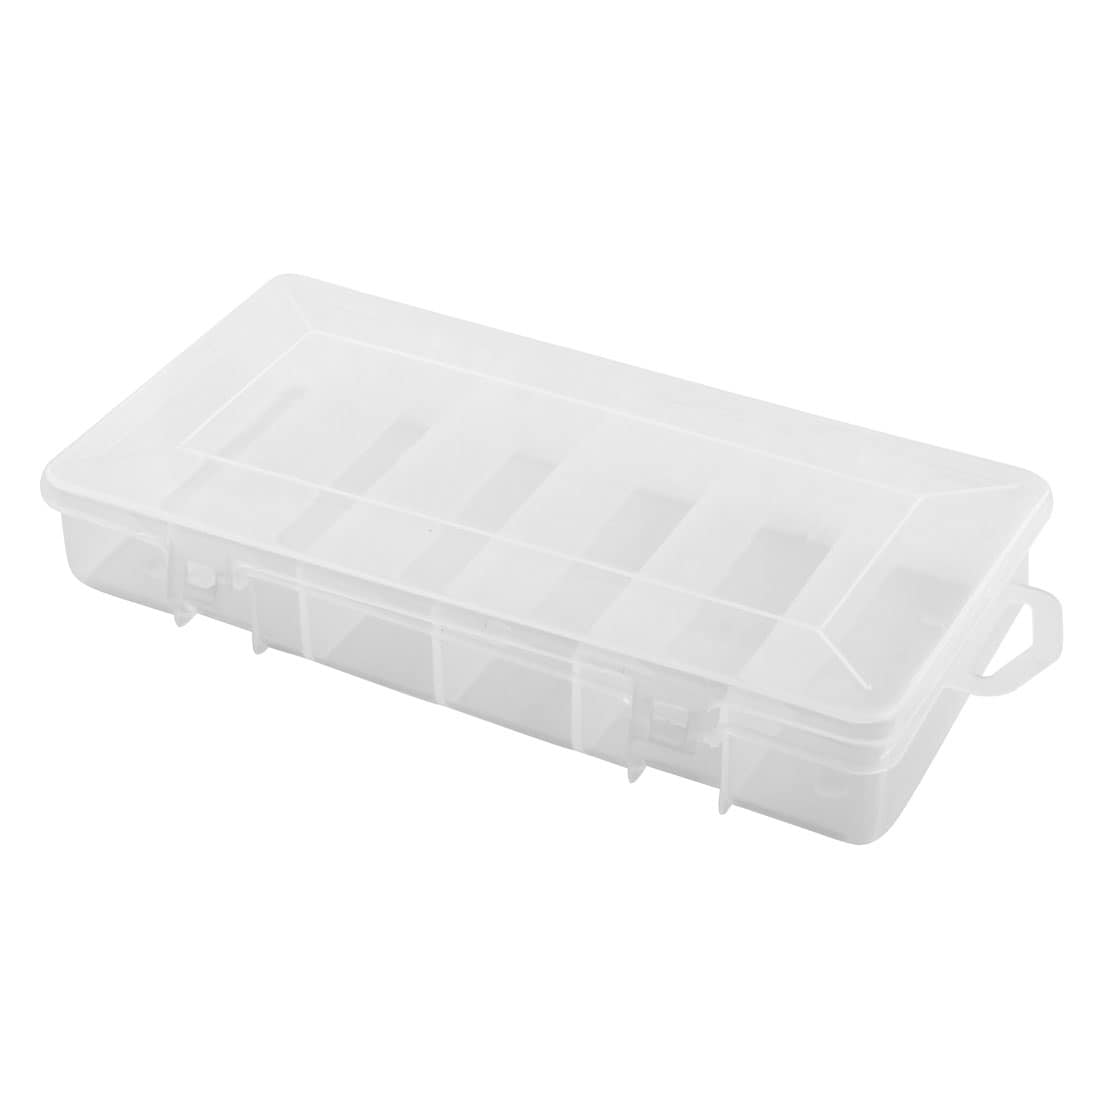 Angling Tackle Plastic 6 Compartments Fishing Lure Bait Storage Box Holder Clear